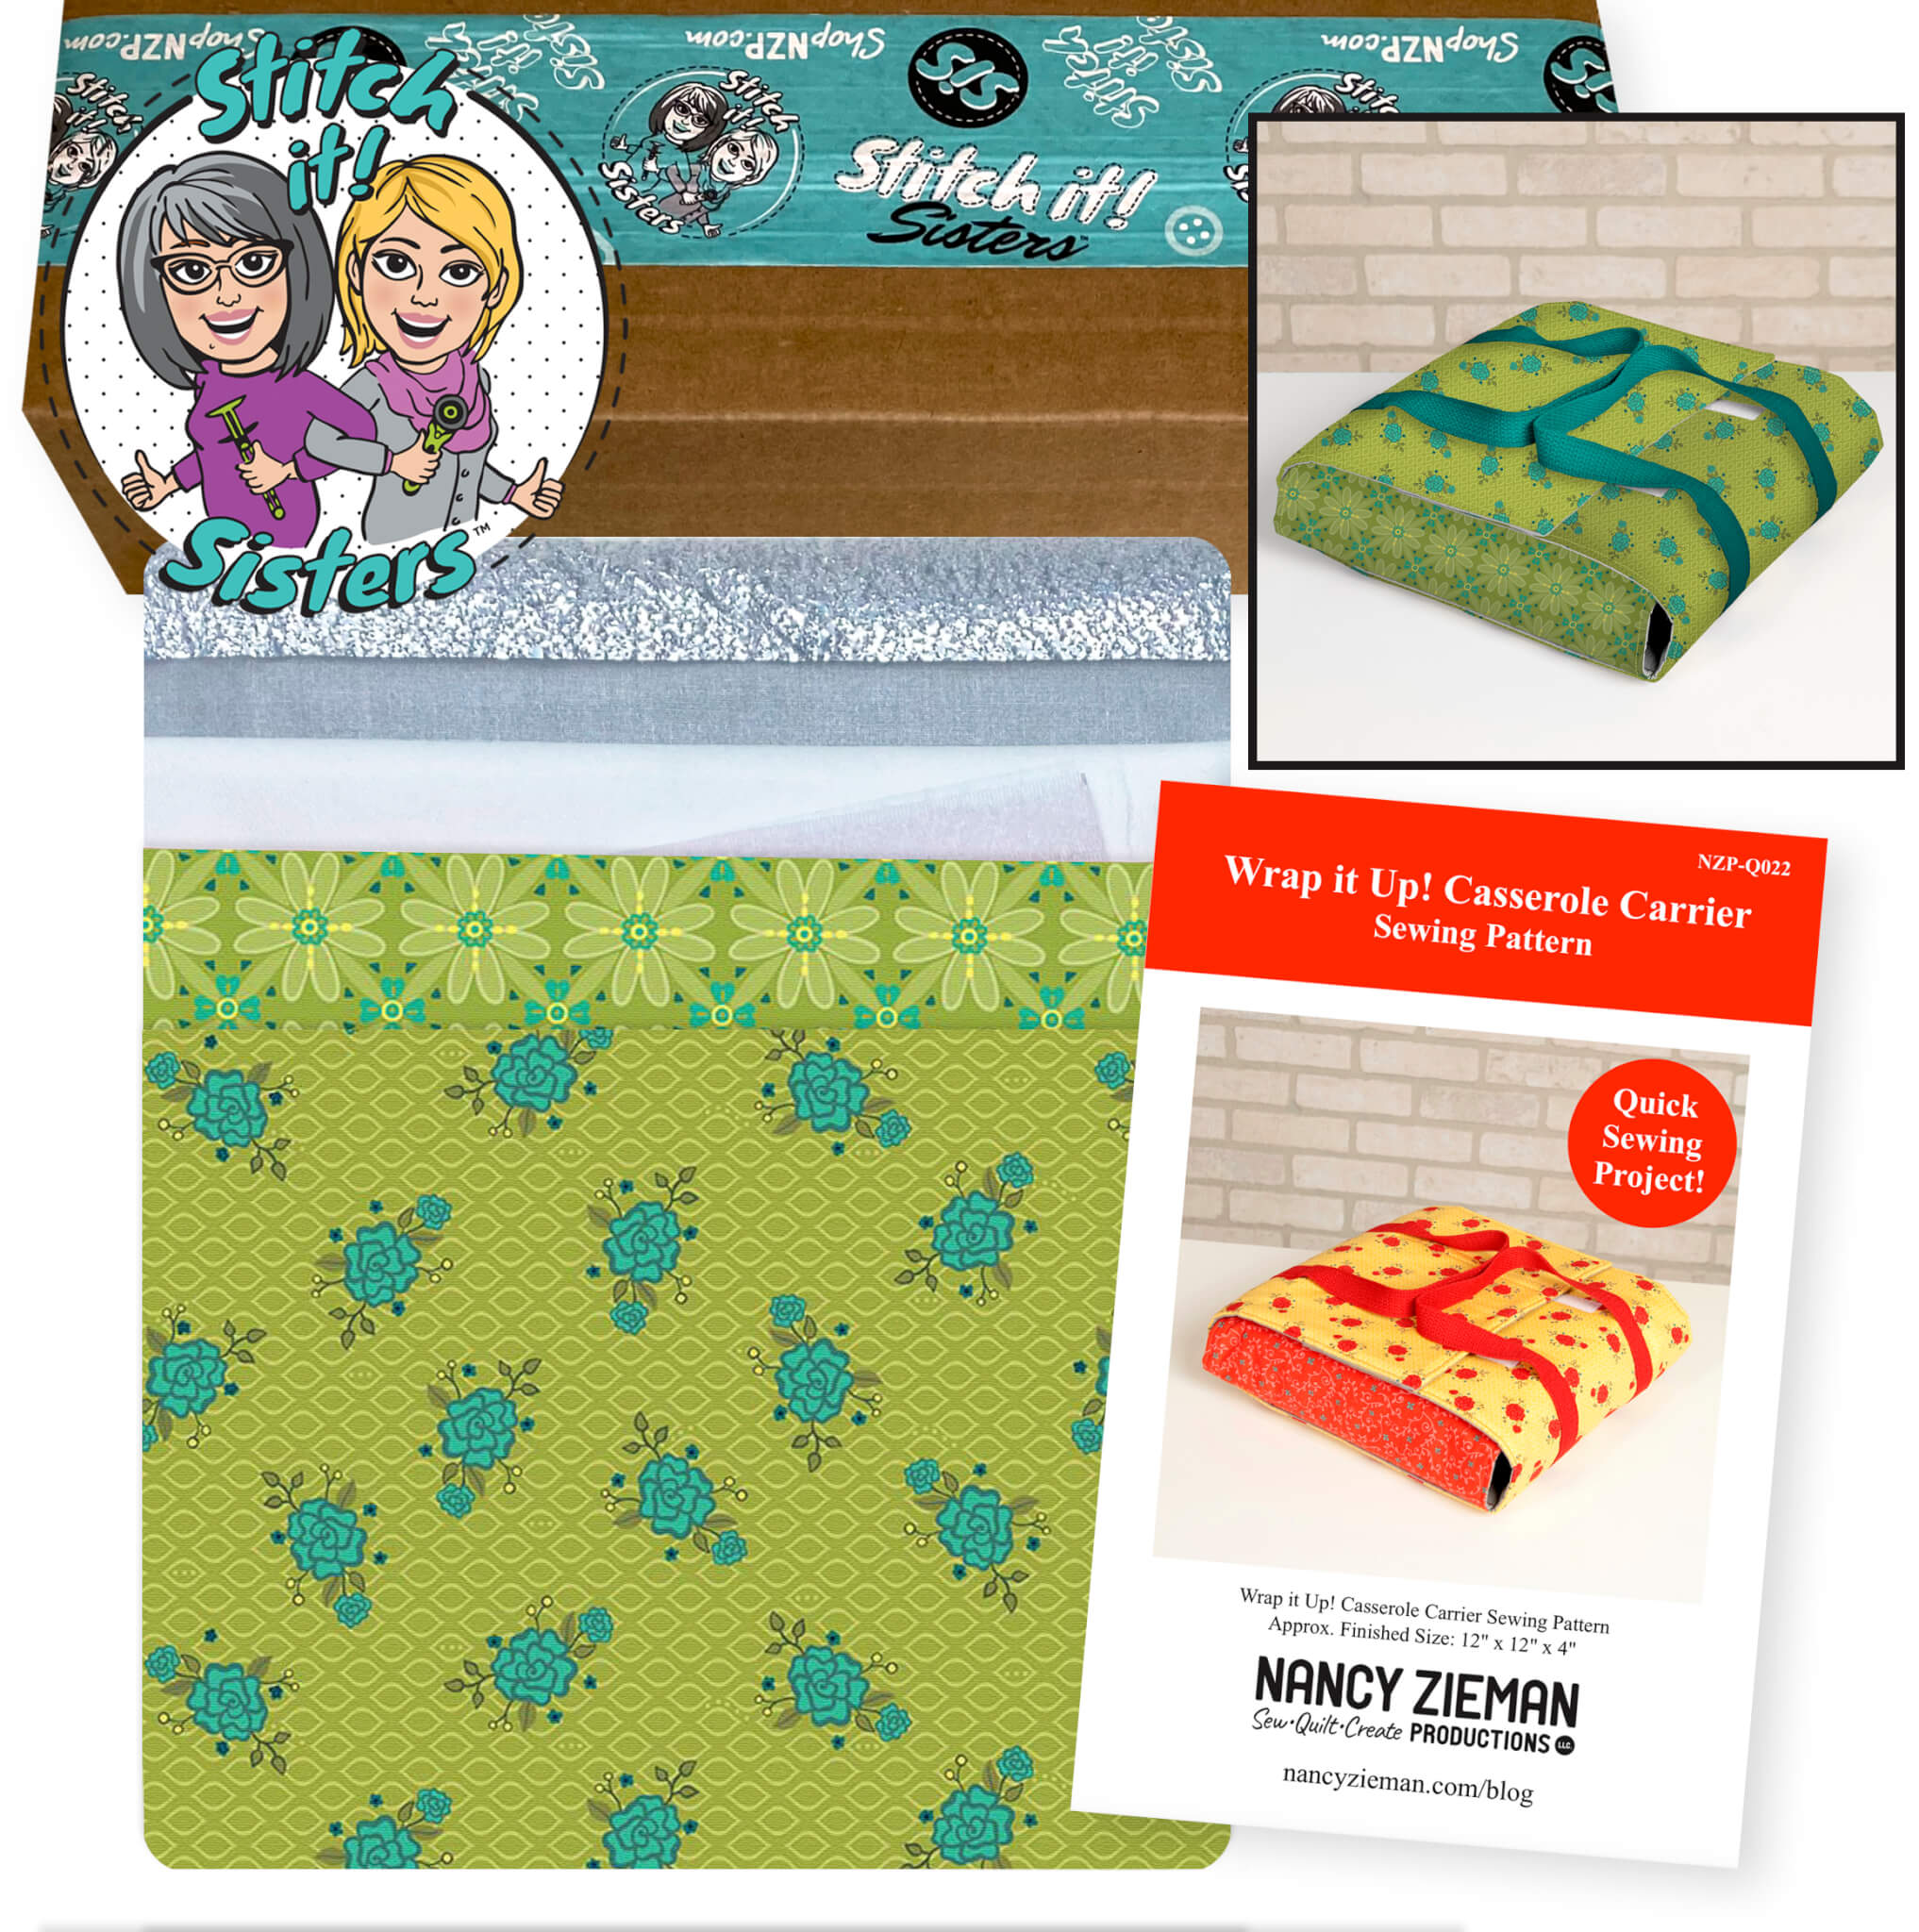 Wrap It Up! Casserole Carrier Sewing Project Bundle Box Kits available at Nancy Zieman Productions at ShopNZP.com